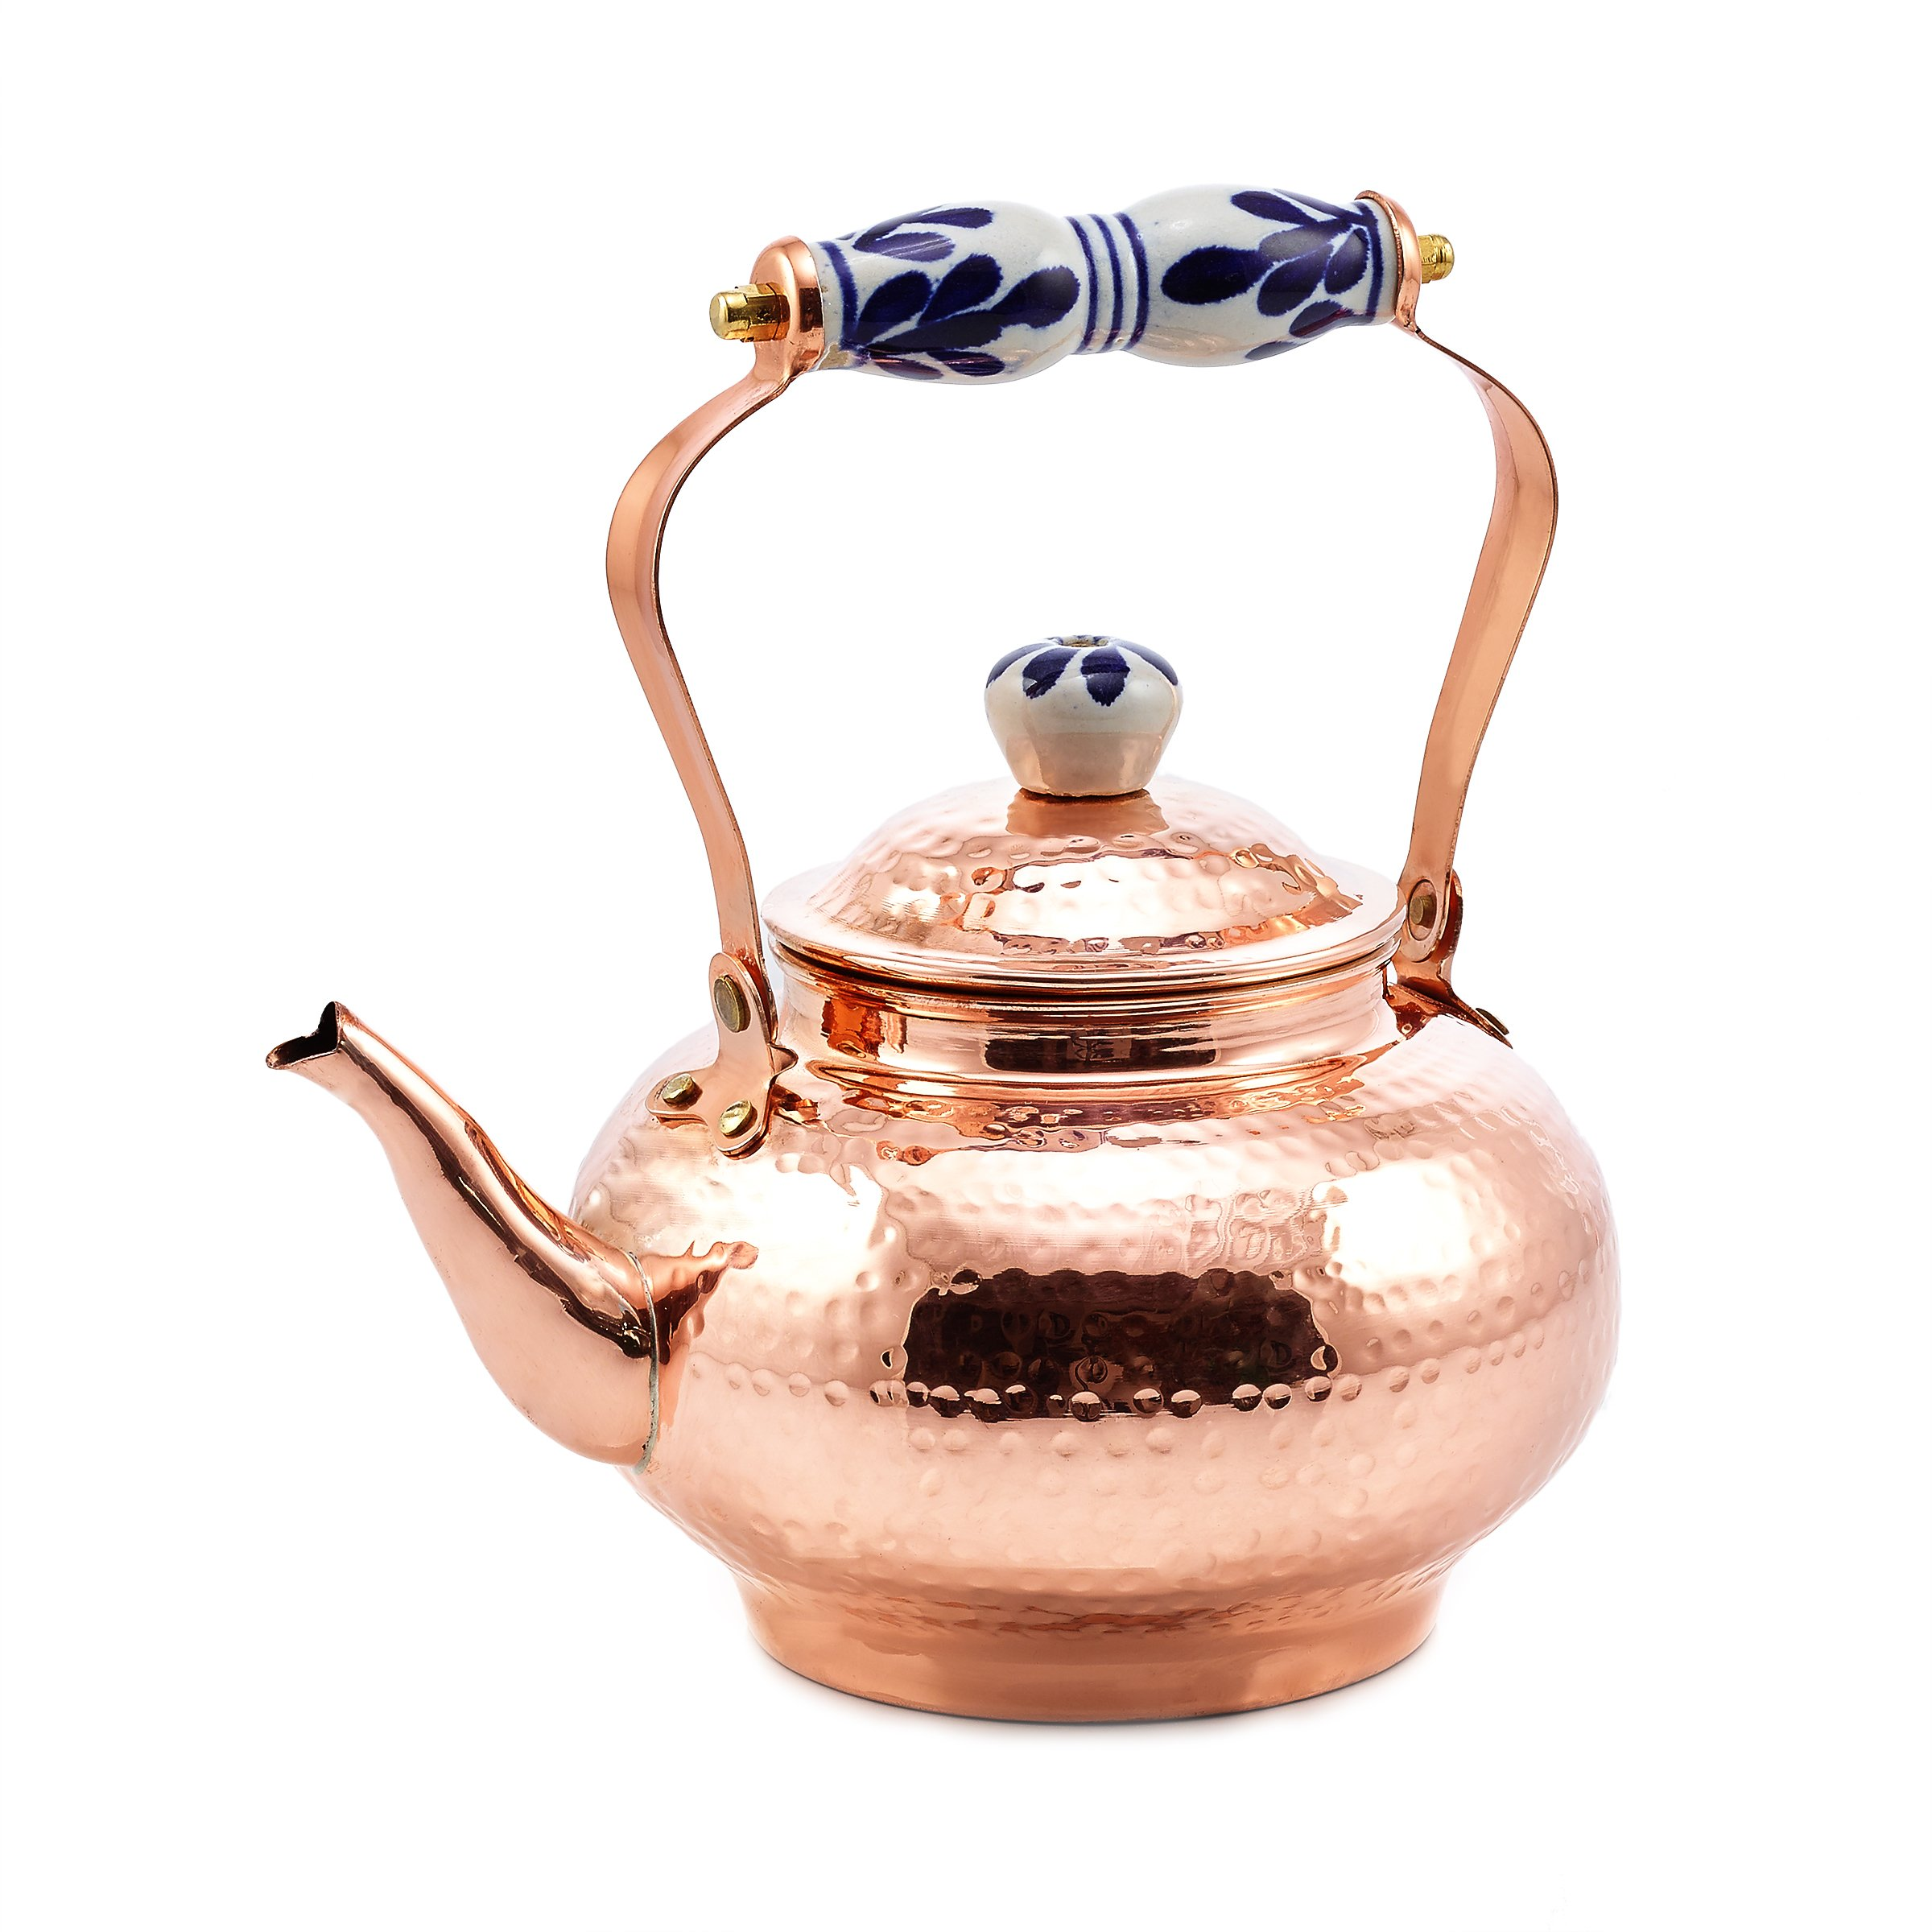 Old Dutch 1868 Tea Kettle 2 quart Copper